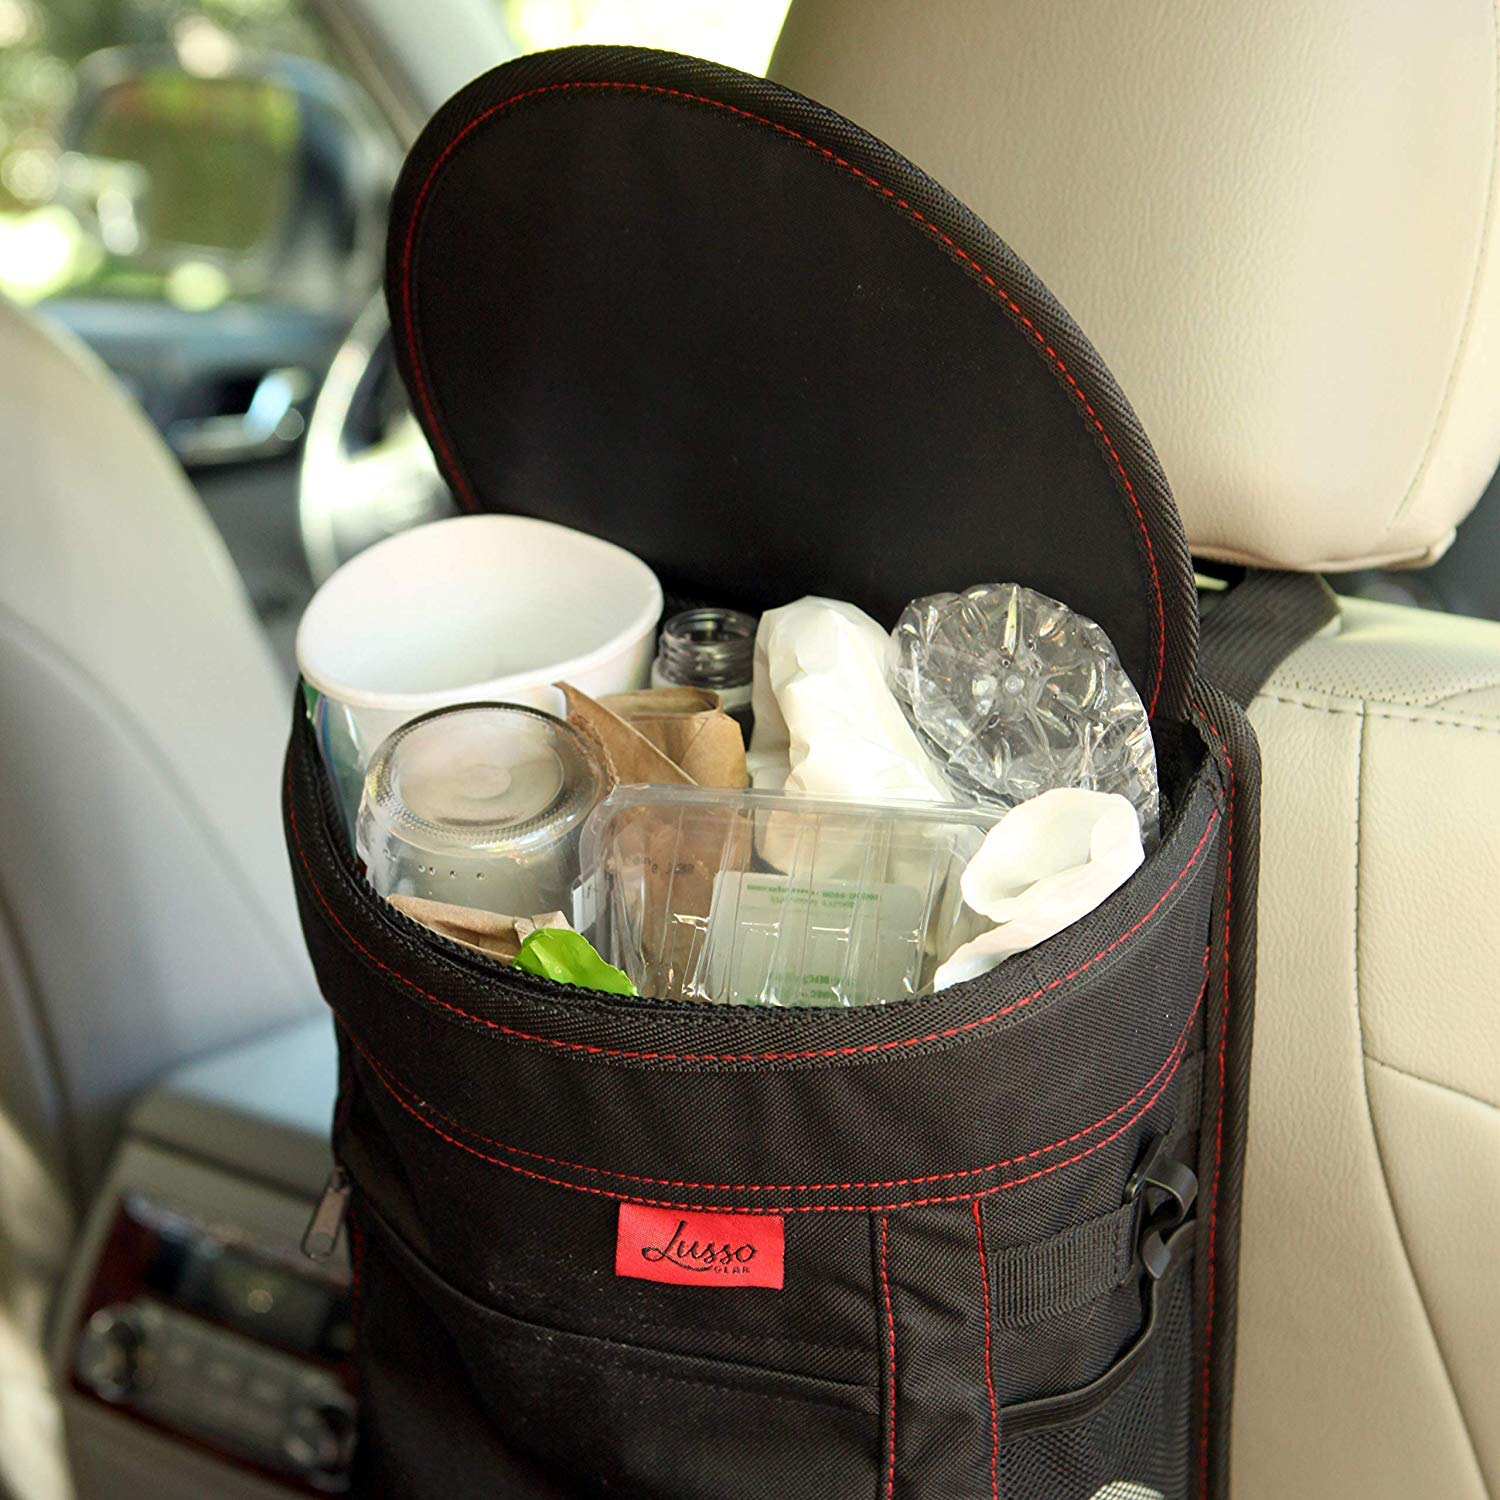 Large 2.5 Gallon Capacity Easy Hanging or Mounting In Car//Truck//Minivan//SUV//Auto Lusso Gear Car Trash Can Compact Design Flip Open Lid Storage Pockets Vinyl Leakproof//Removable Trash Liner